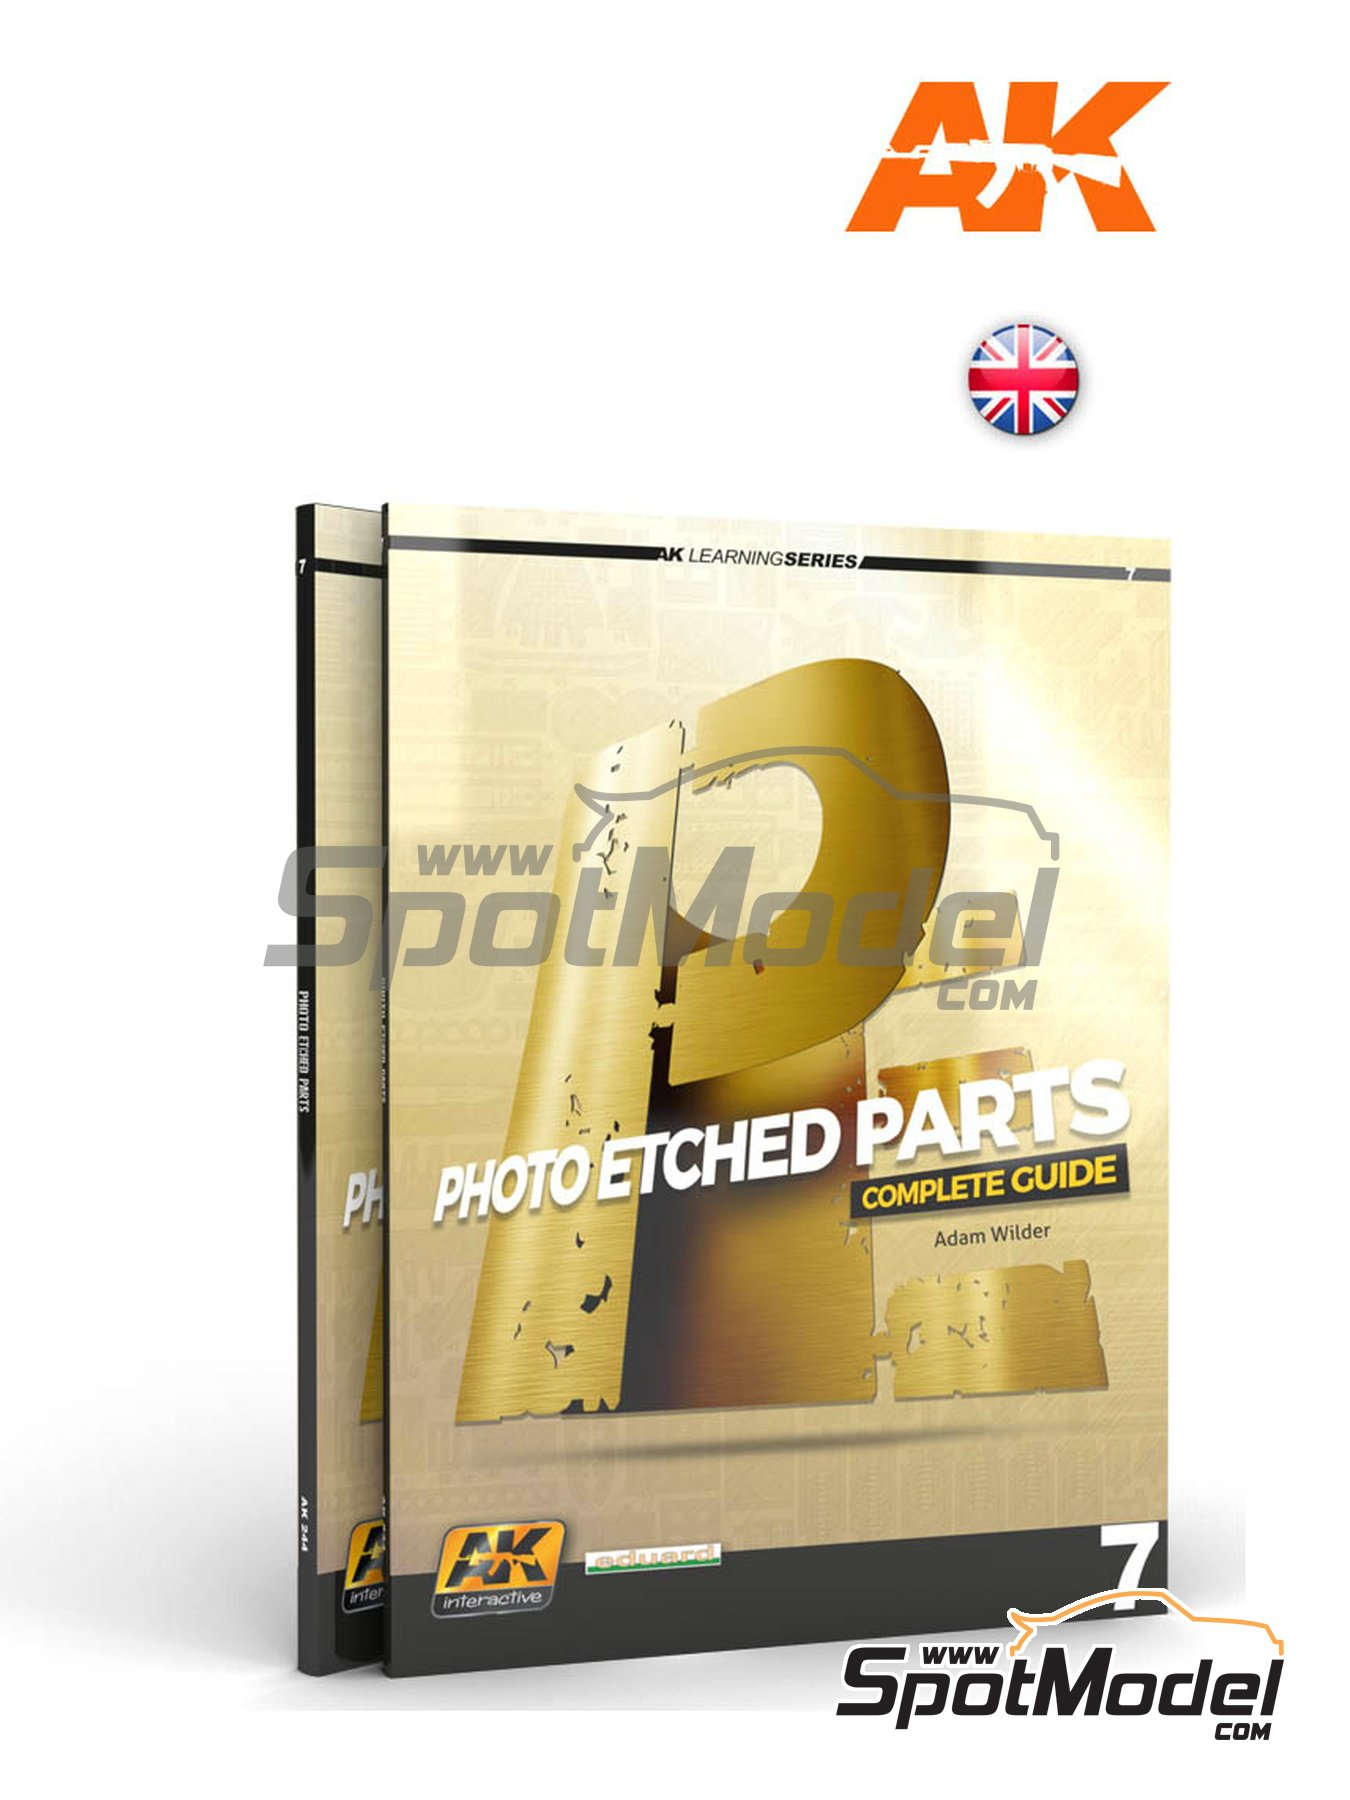 Photoetch parts - AK Learning series number 7 | Libro fabricado por AK Interactive (ref. AK-244) image